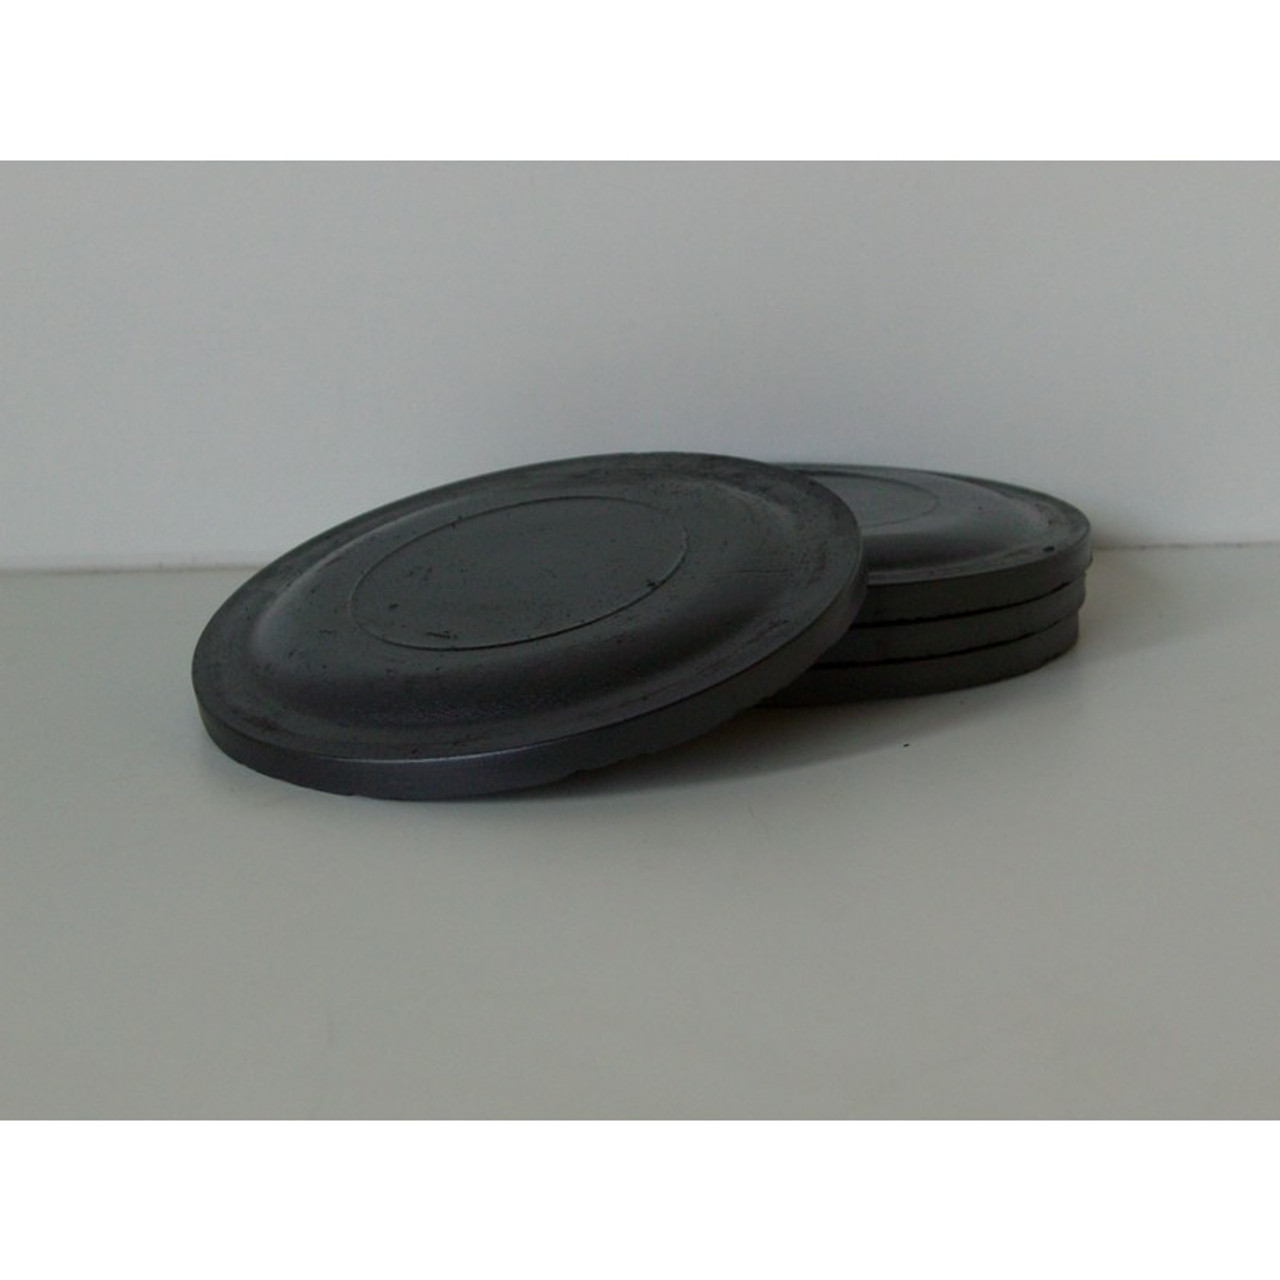 CCI Battue Black Clays, buy at cheap rates from bradford stalker